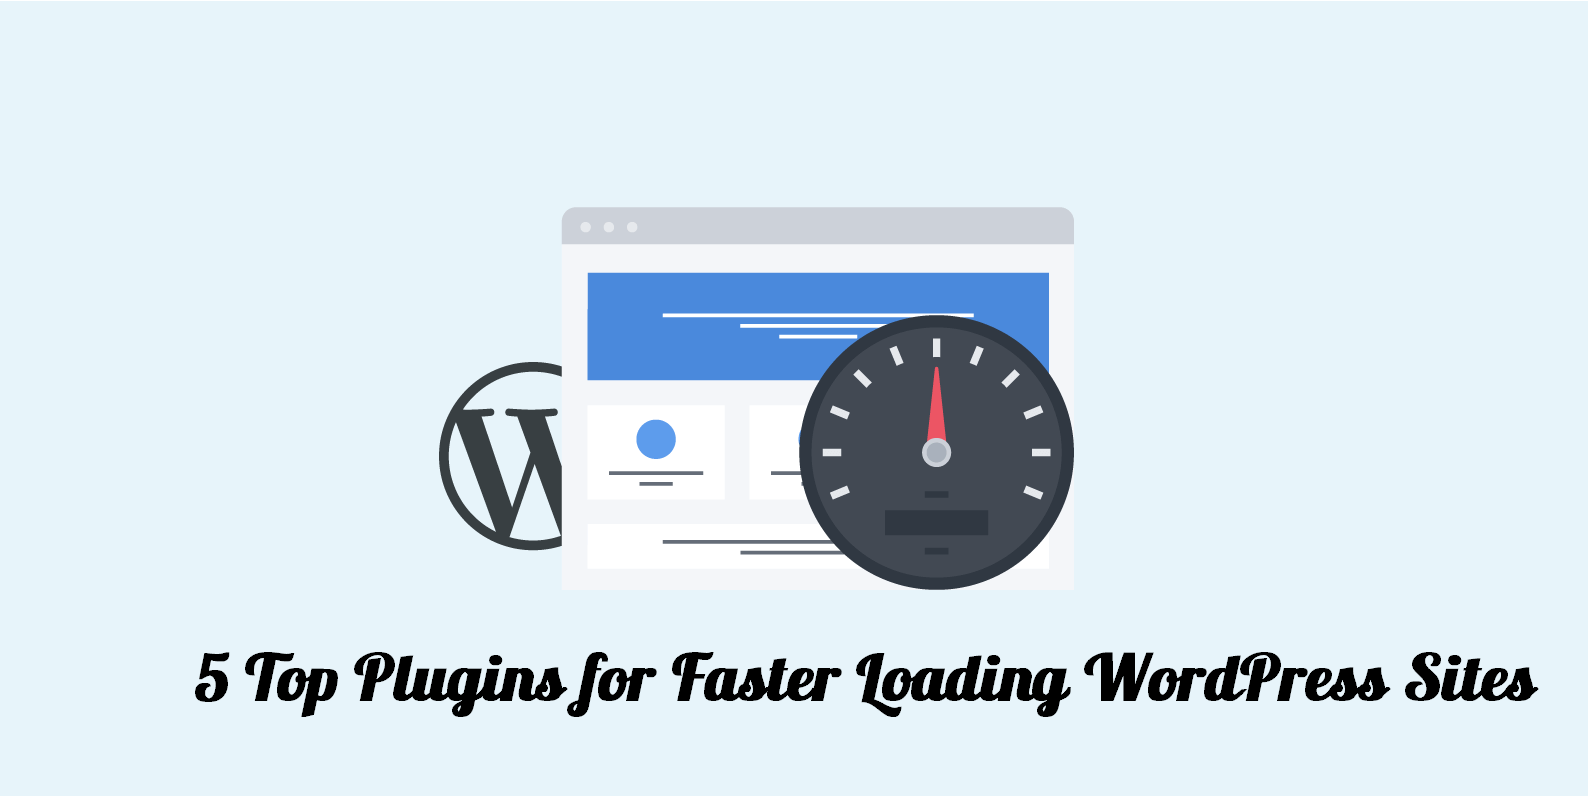 5 Top Plugins for Faster Loading WordPress Sites